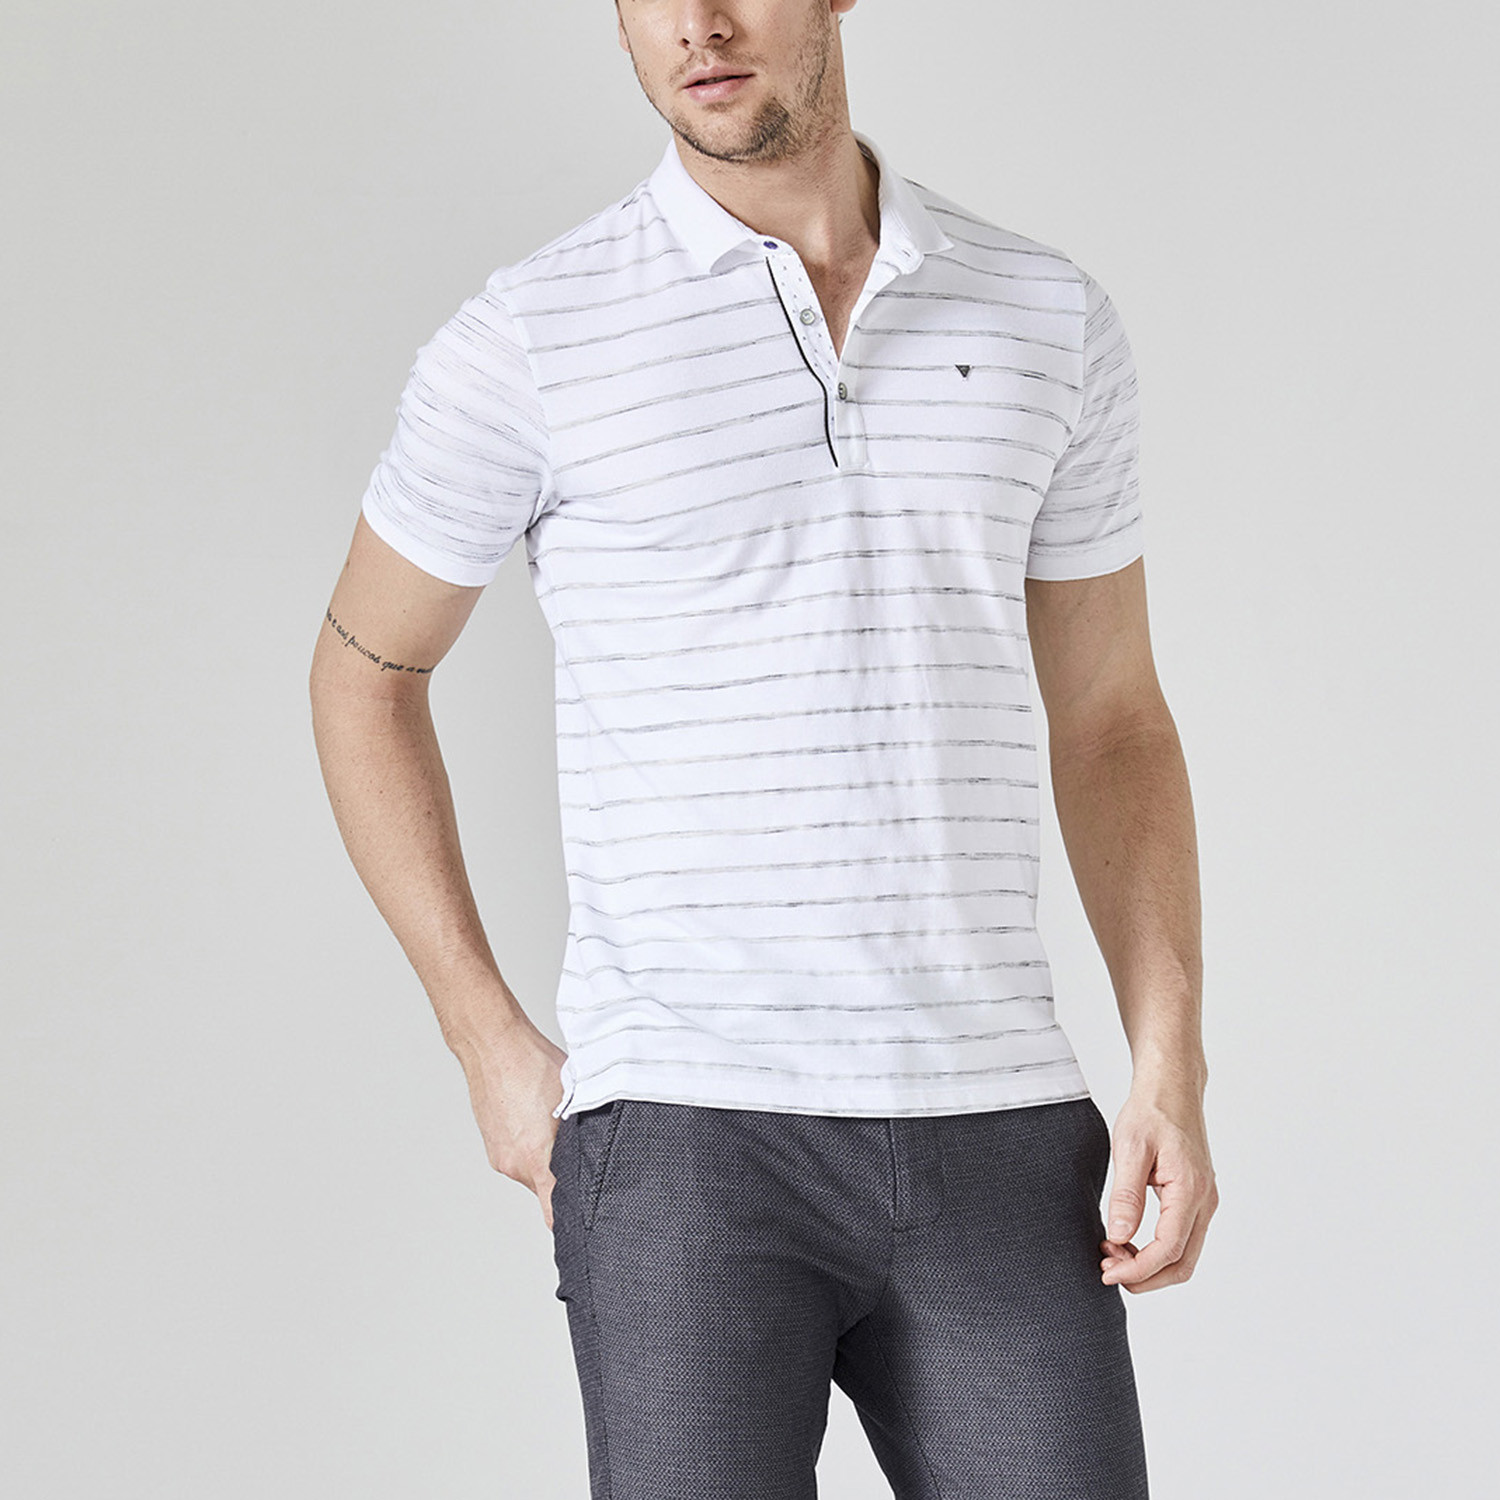 Printed Polo T Shirt White S Clearance Casual Shirts Touch